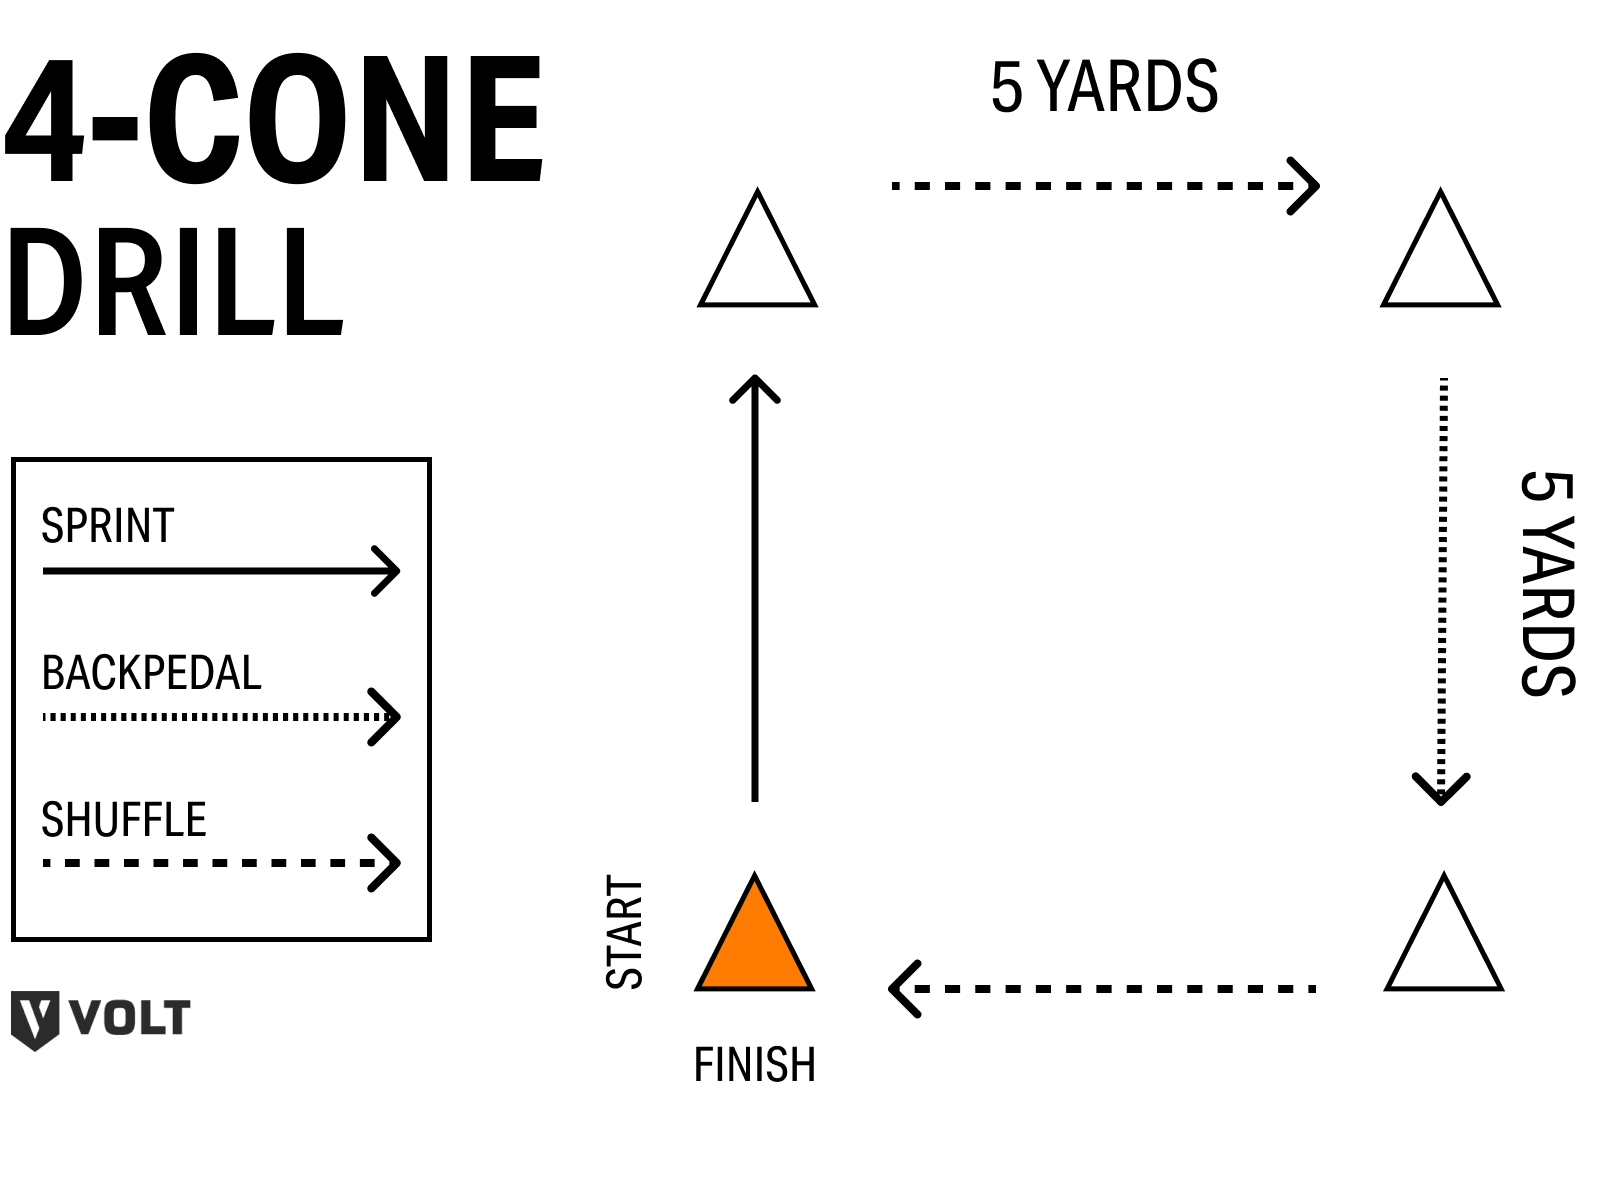 The traditional four-cone drill. Set up 4 cones in a 5-yd x 5-yd square. Starting at the lower left cone, sprint forward 5 yards, shuffle right, backpedal, then shuffle left back to the starting cone.